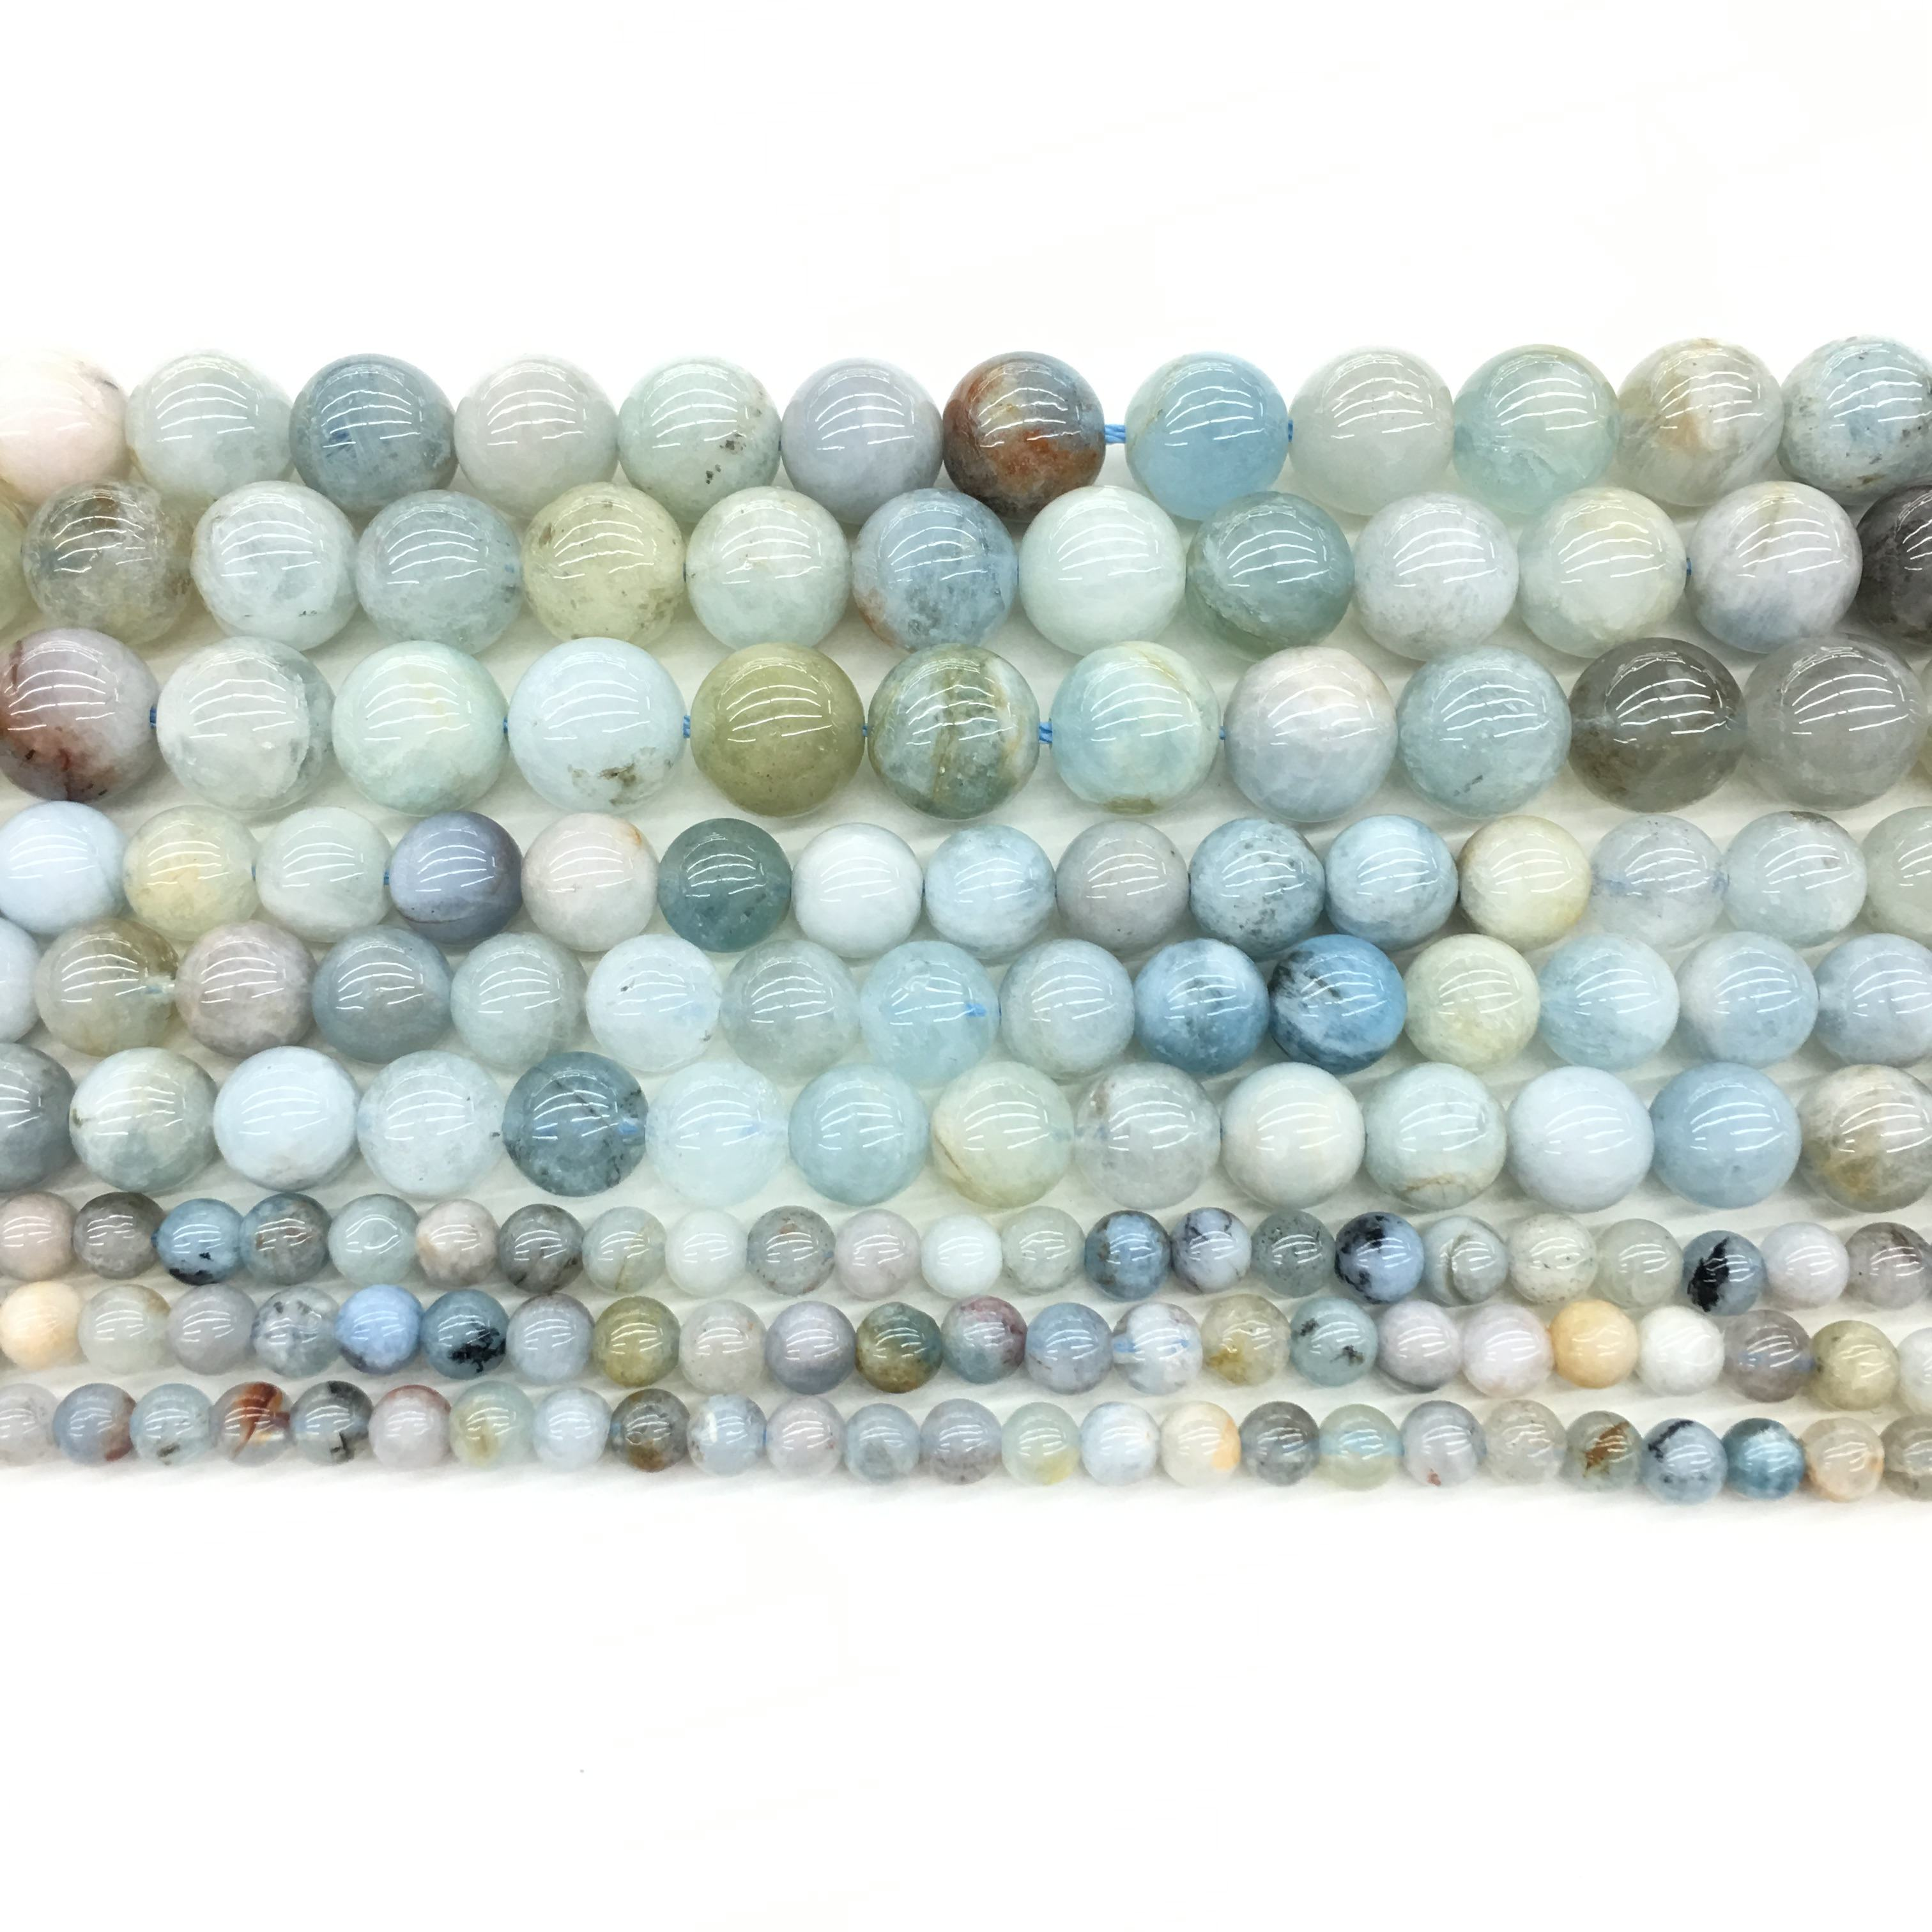 Natural Aquamarine Round Loose Bead highly Polished Gemstone for Jewelry making and custom design A-Quality 16inch